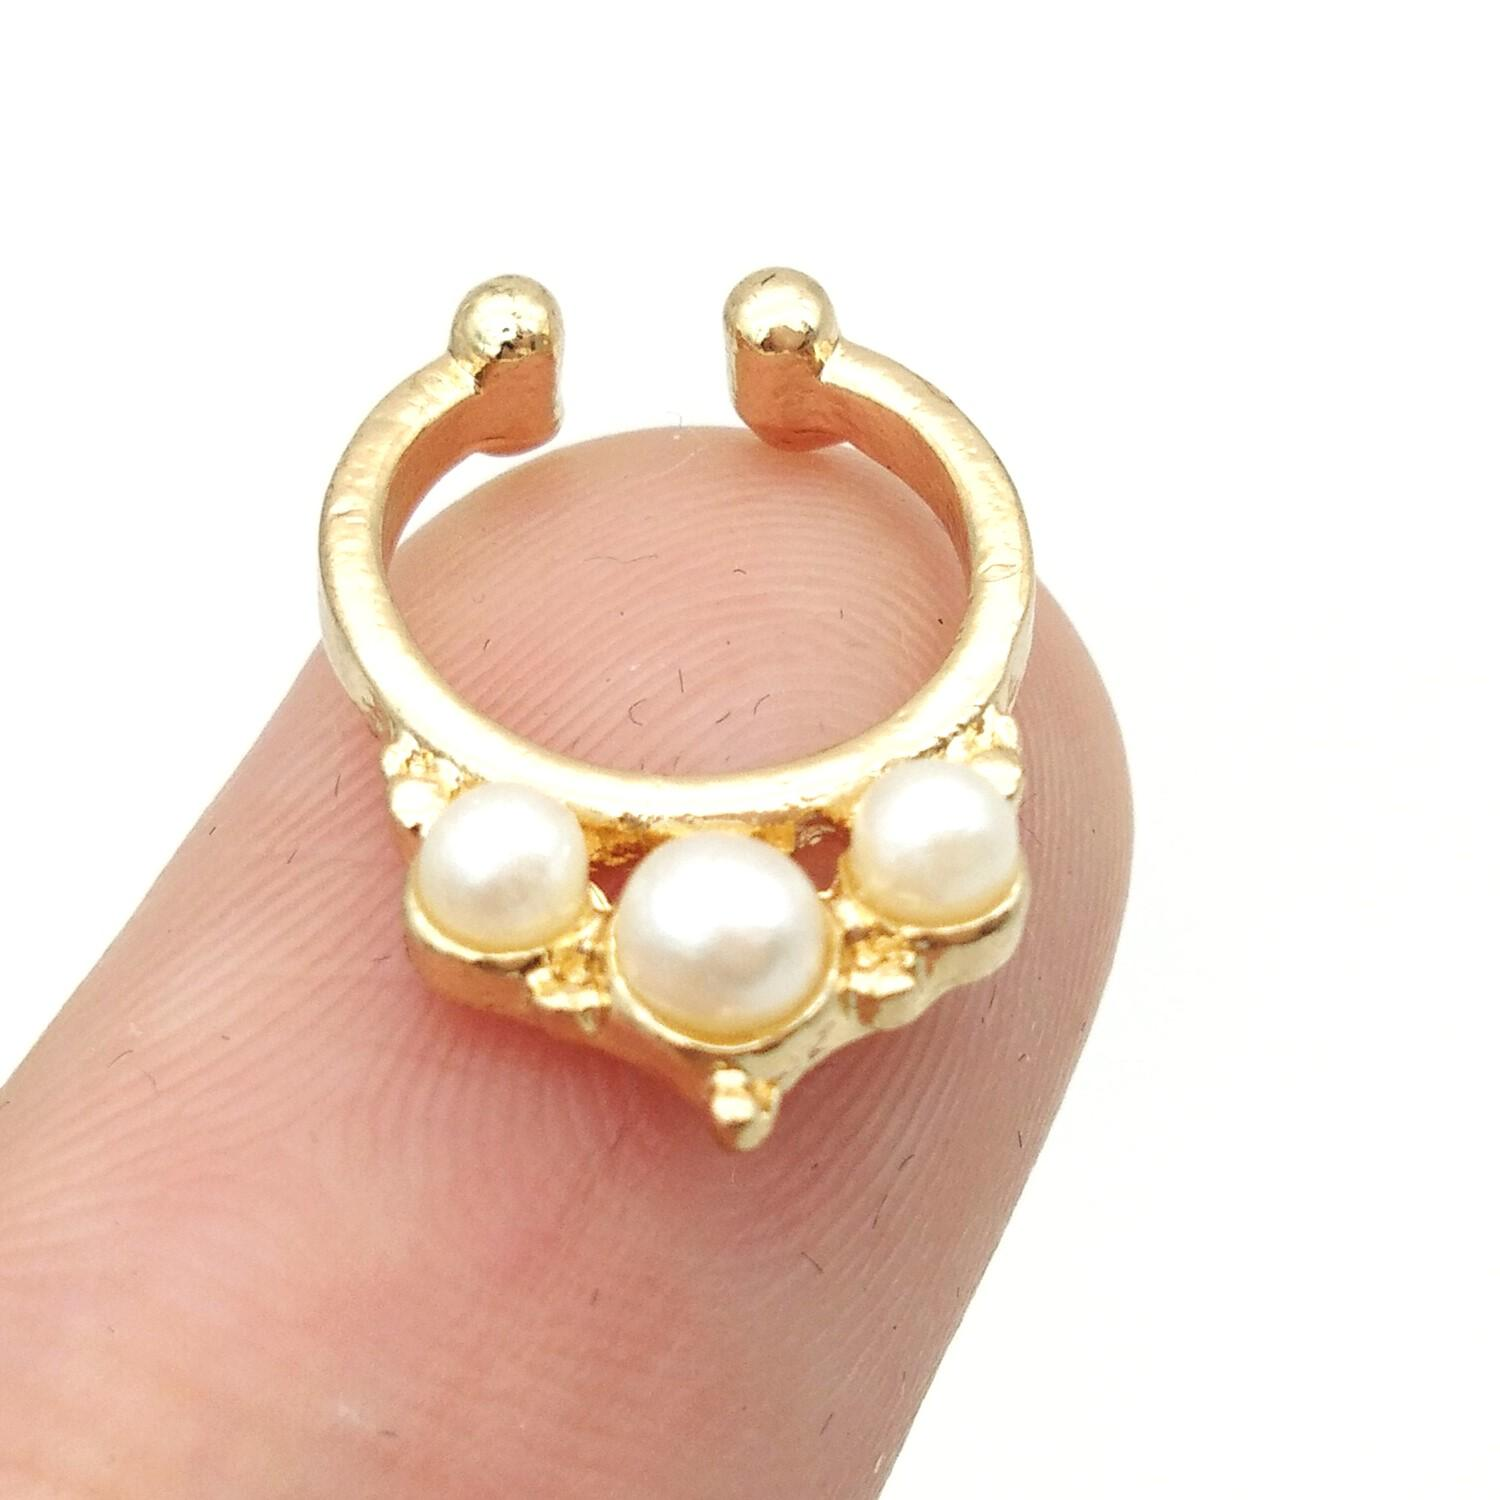 2020 2016 New Design Imitation Pearl Fake Nose Ring Clip On Body